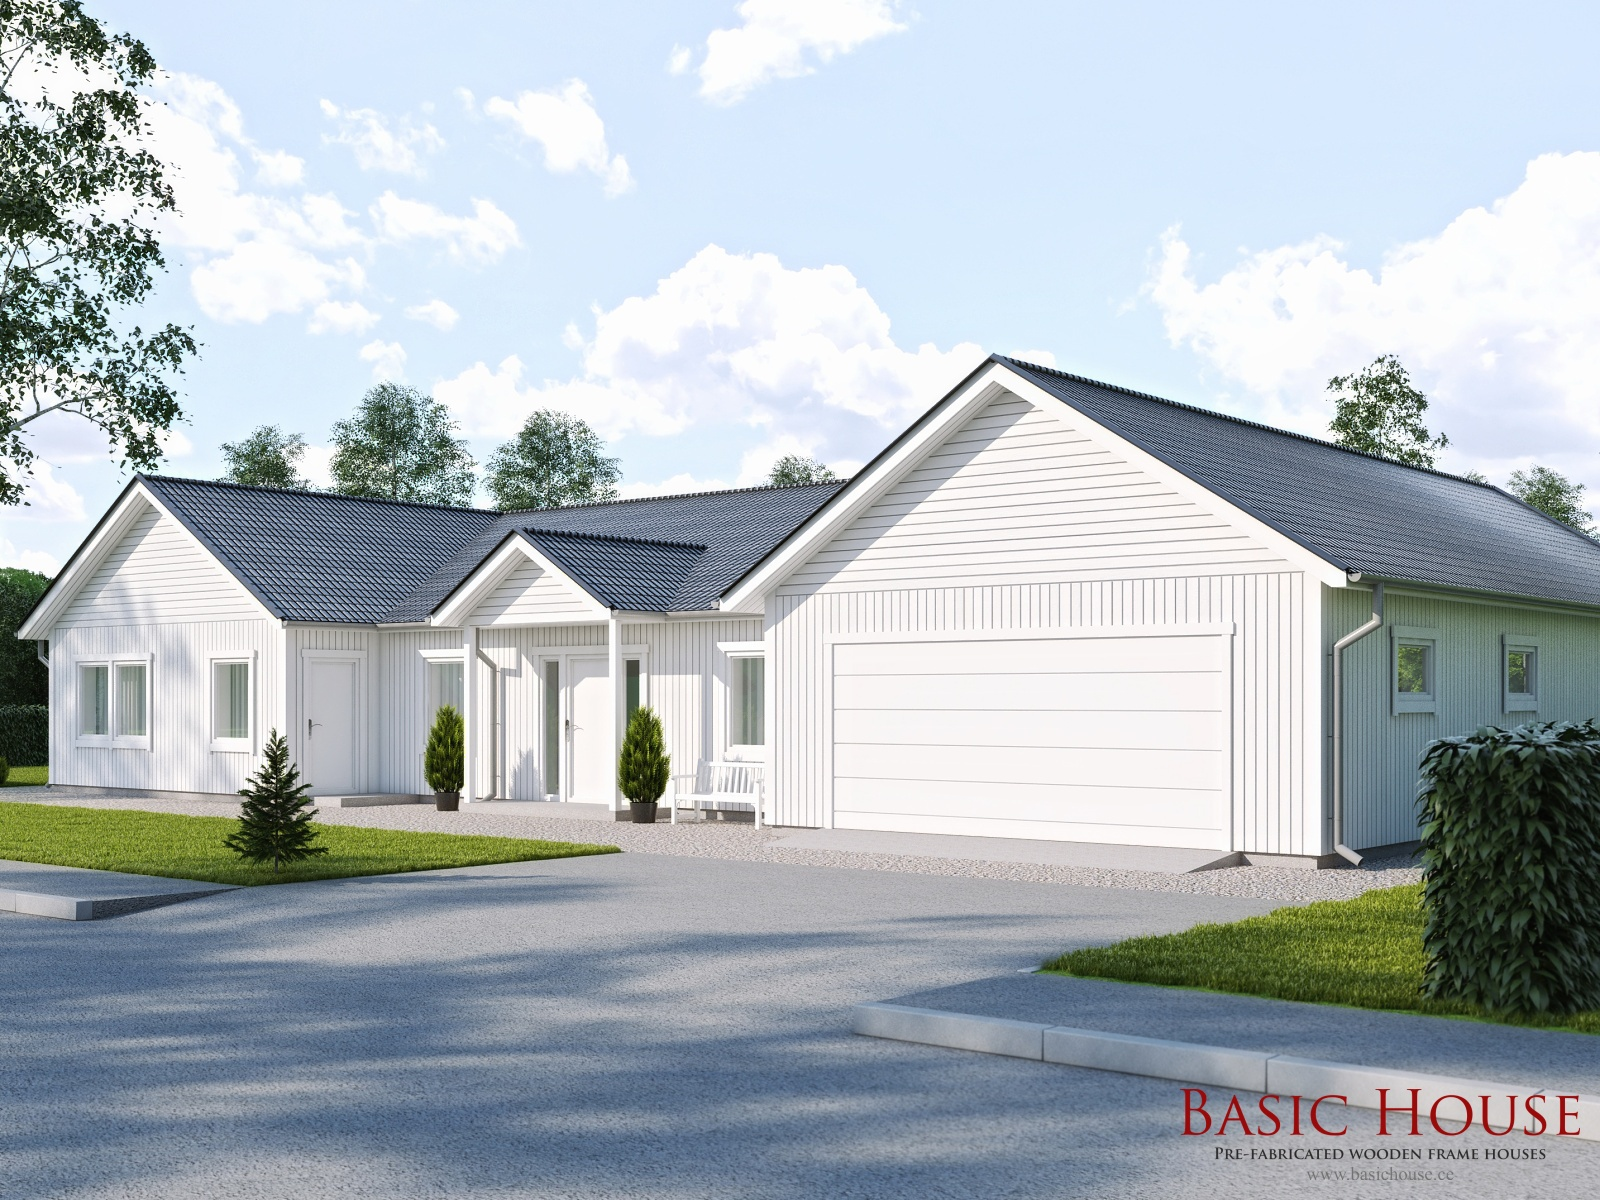 Basic House | Pre-fabricated wooden frame houses